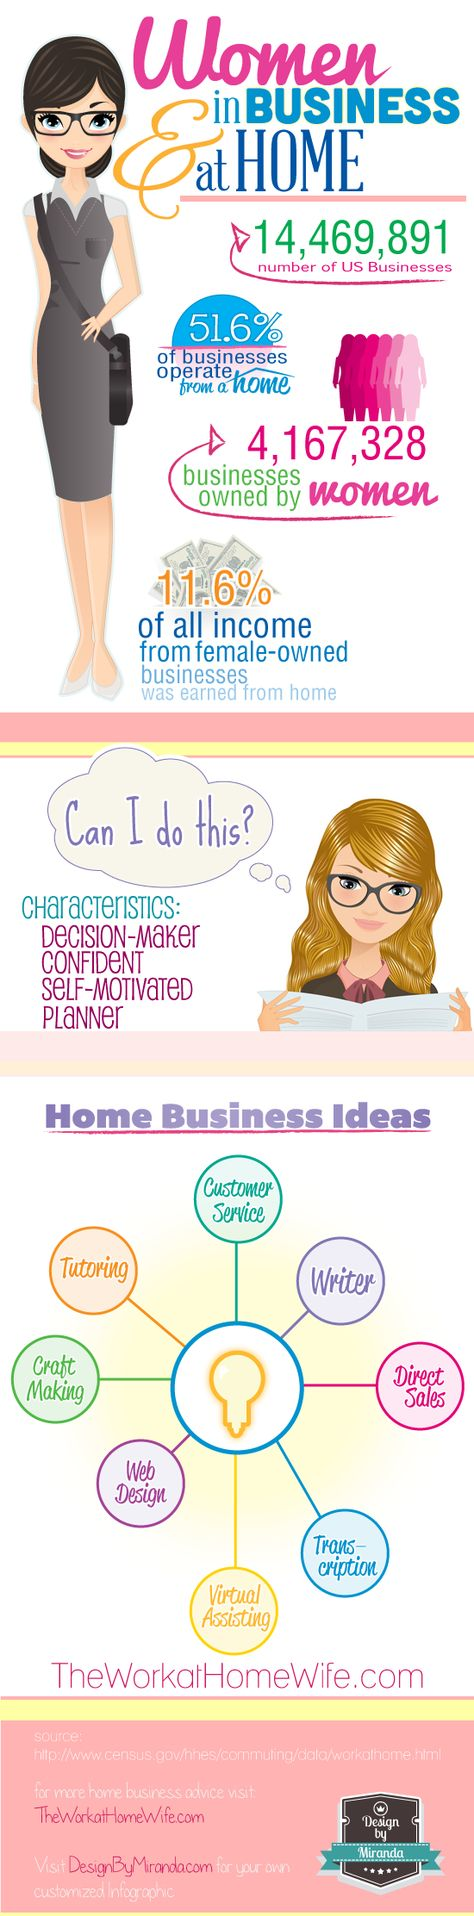 681 best Home-Based Business Info images on Pinterest | Craft ...